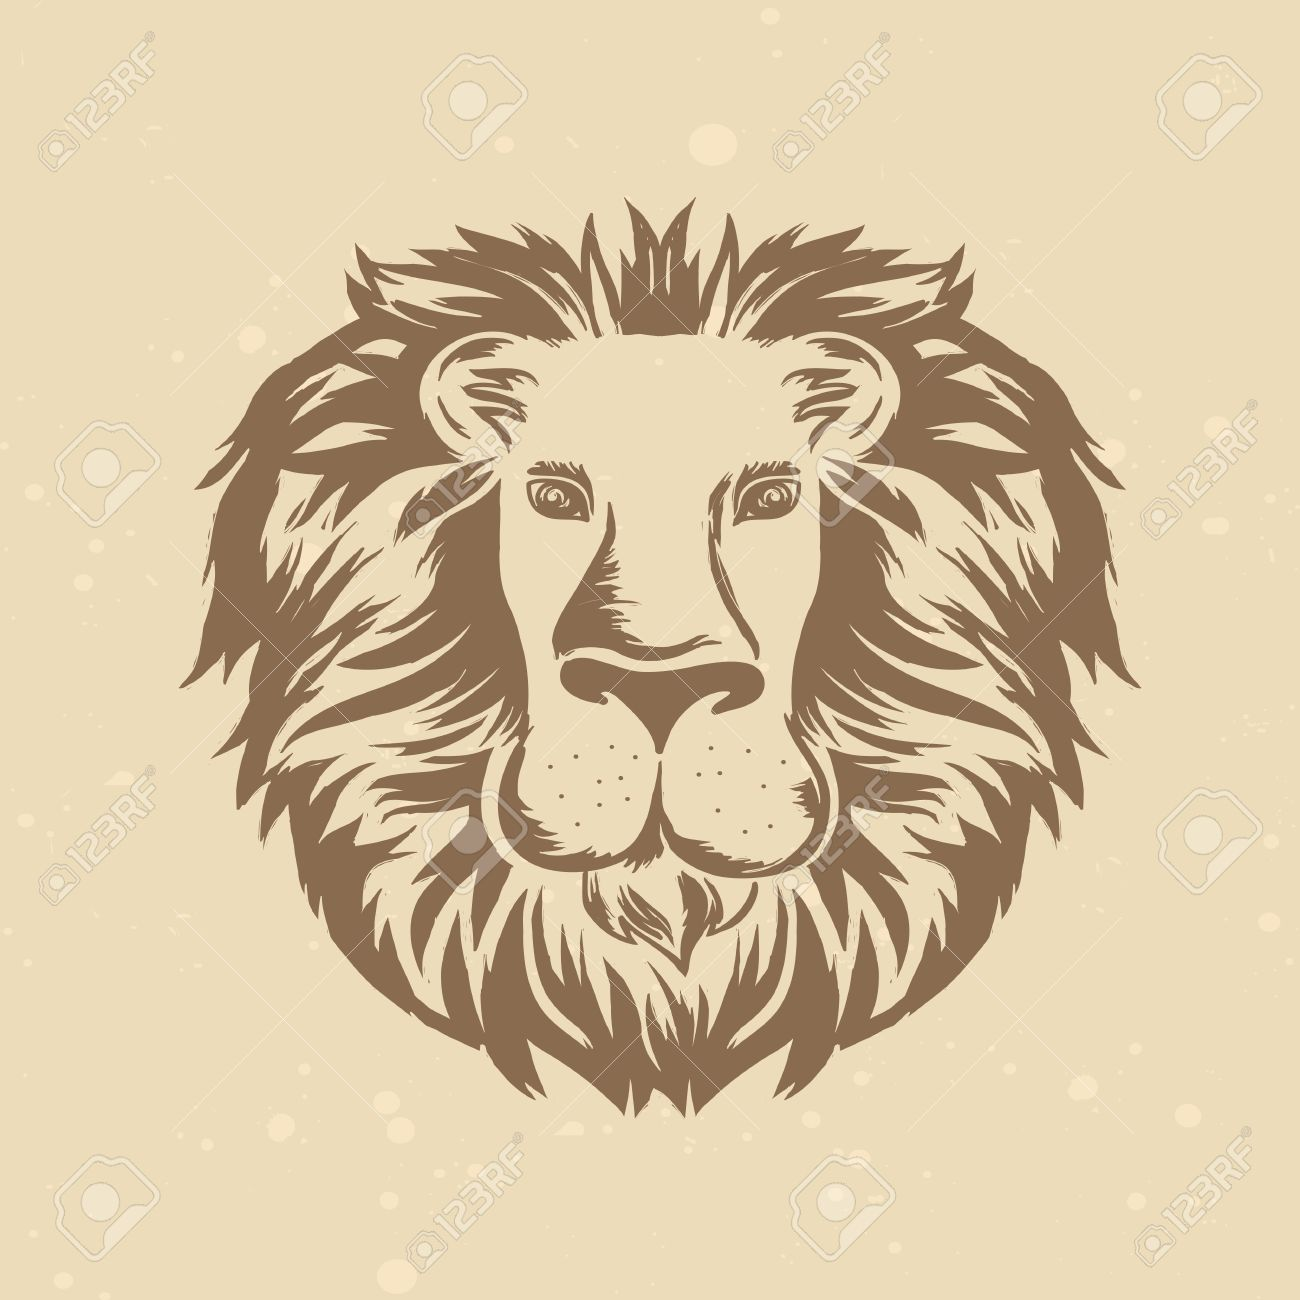 lion head in engraving style - vintage illustration Stock Vector - 19626681